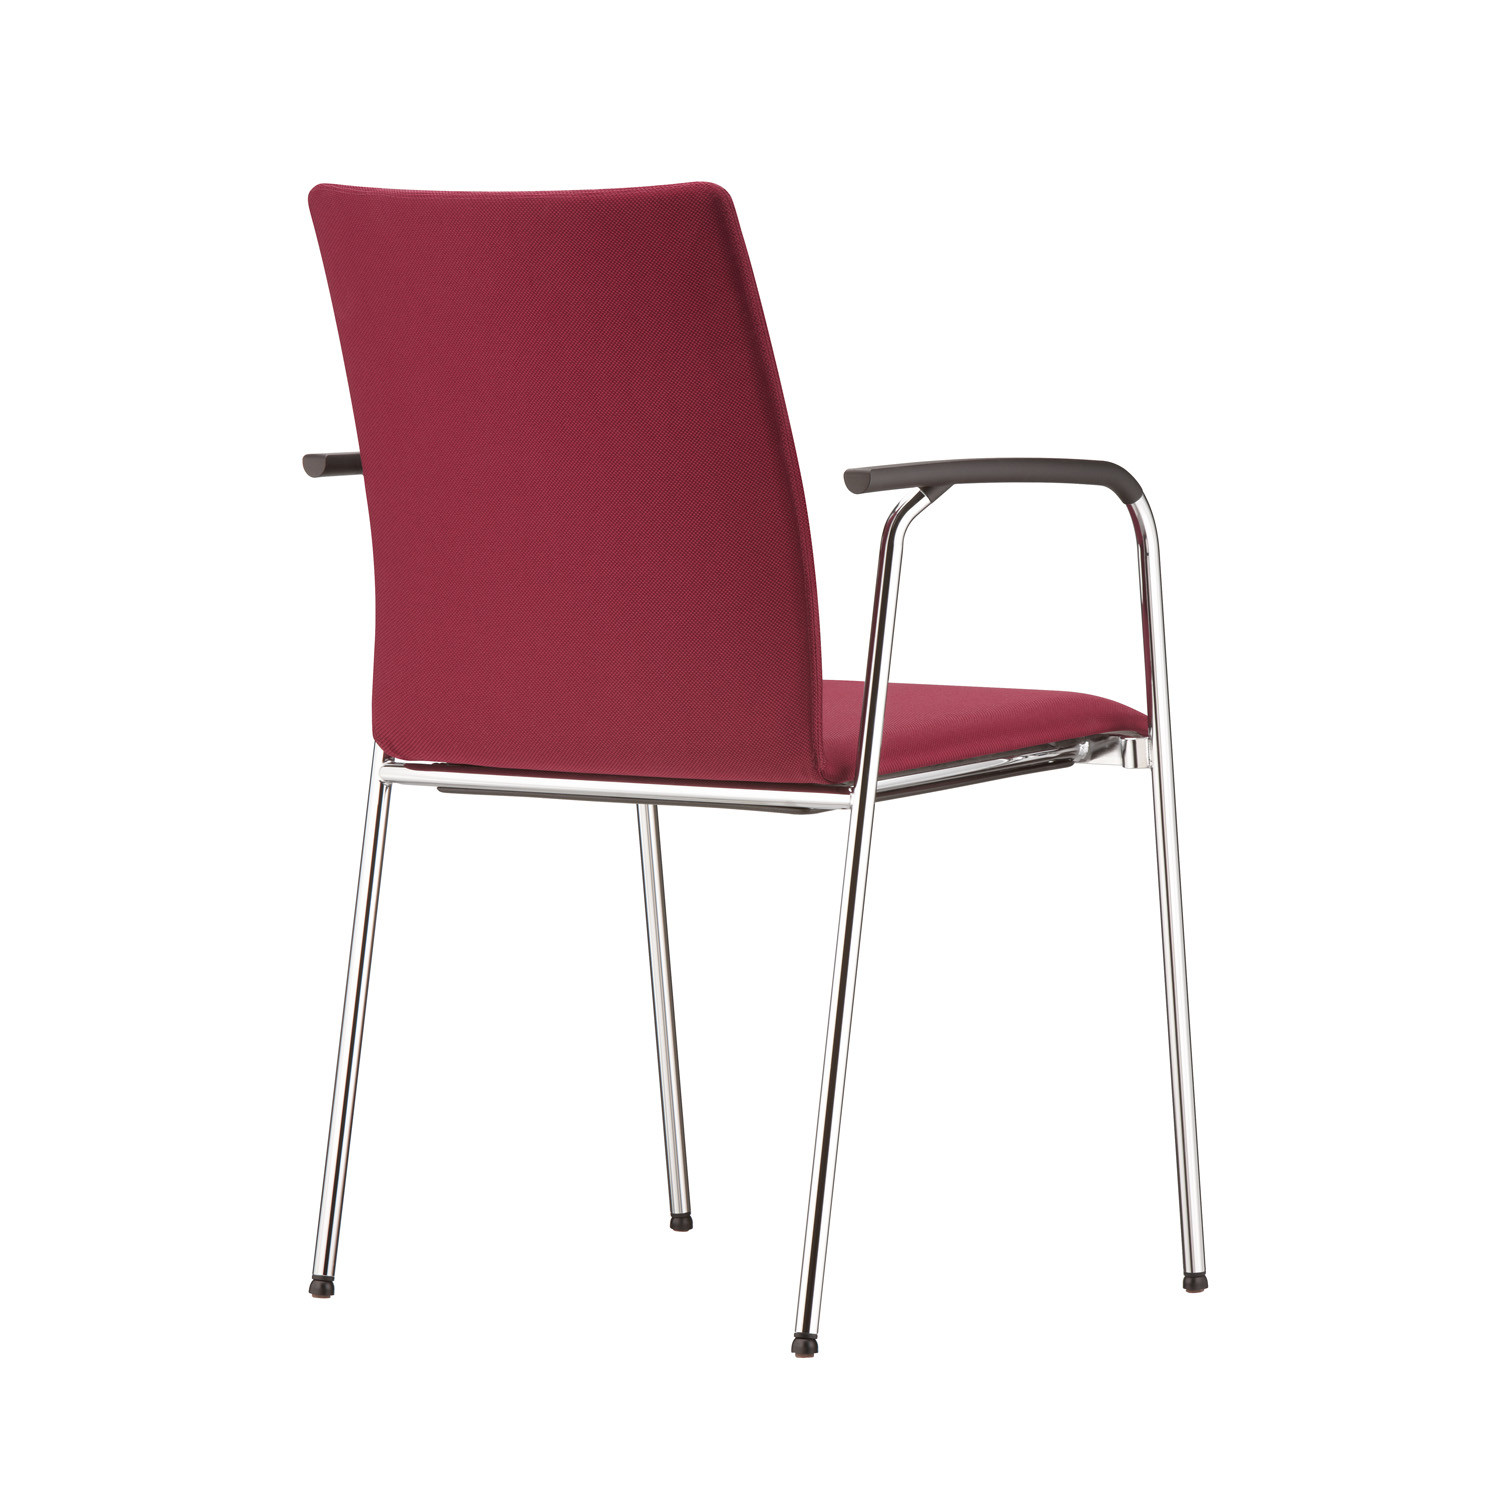 firstclass modern armchair. First Class Chair  4 Legged Armchair Brunner Stackable Training Chairs Apres